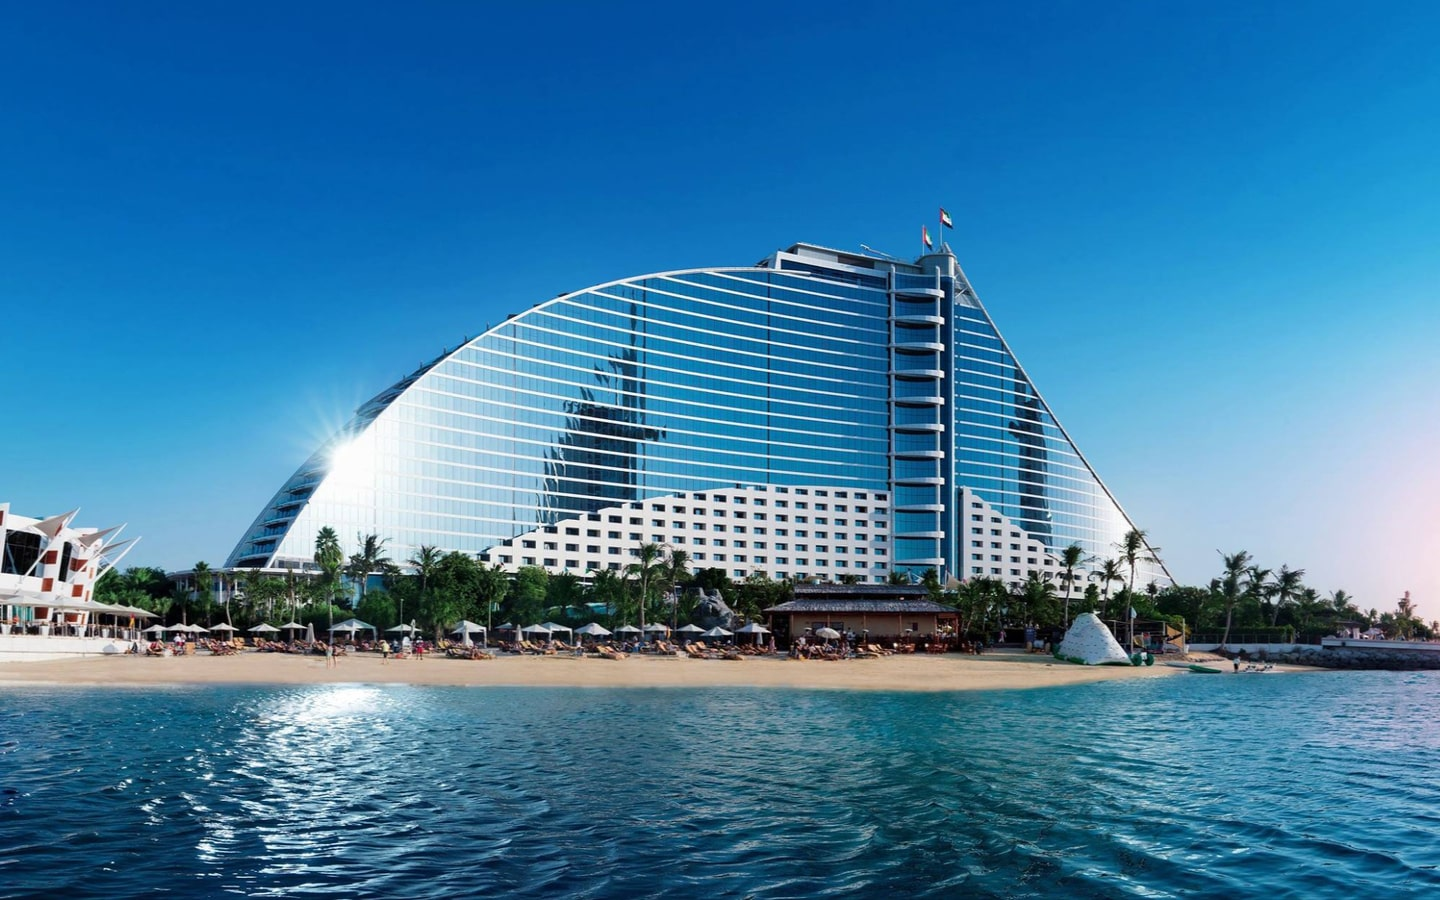 View of the Jumeirah Beach Hotel, and the beach, which is offering New Year hotel deals